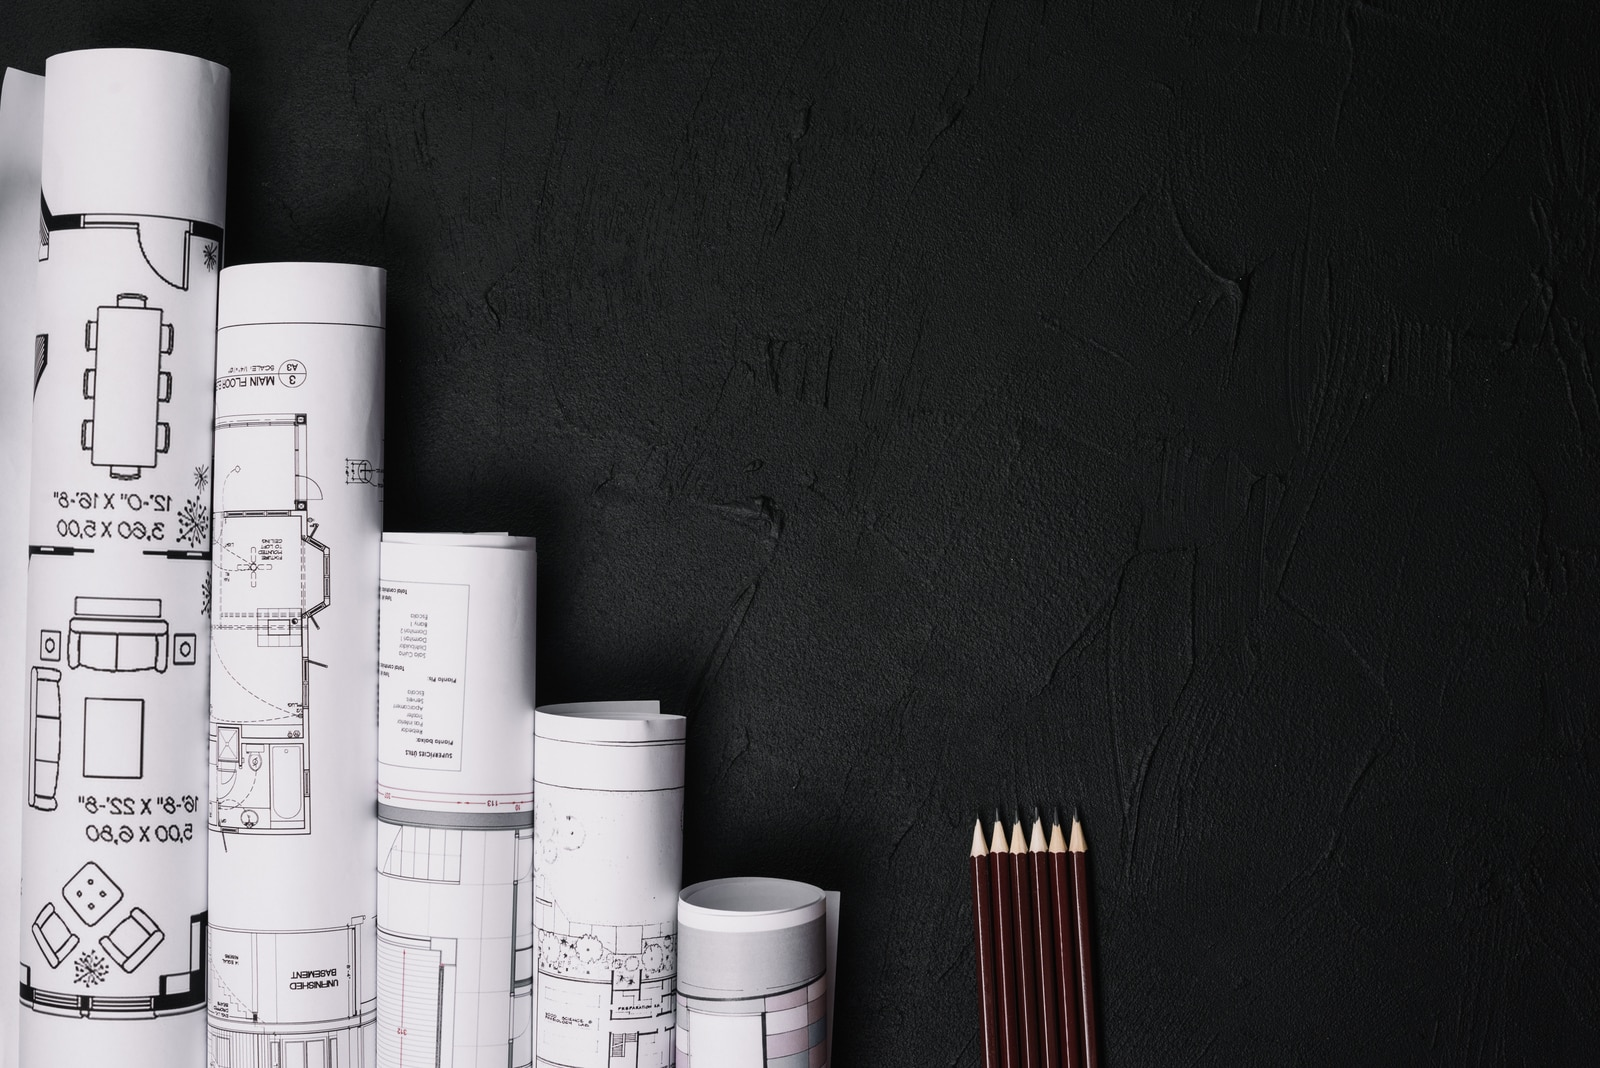 25 things to consider before accepting your architecture dream job